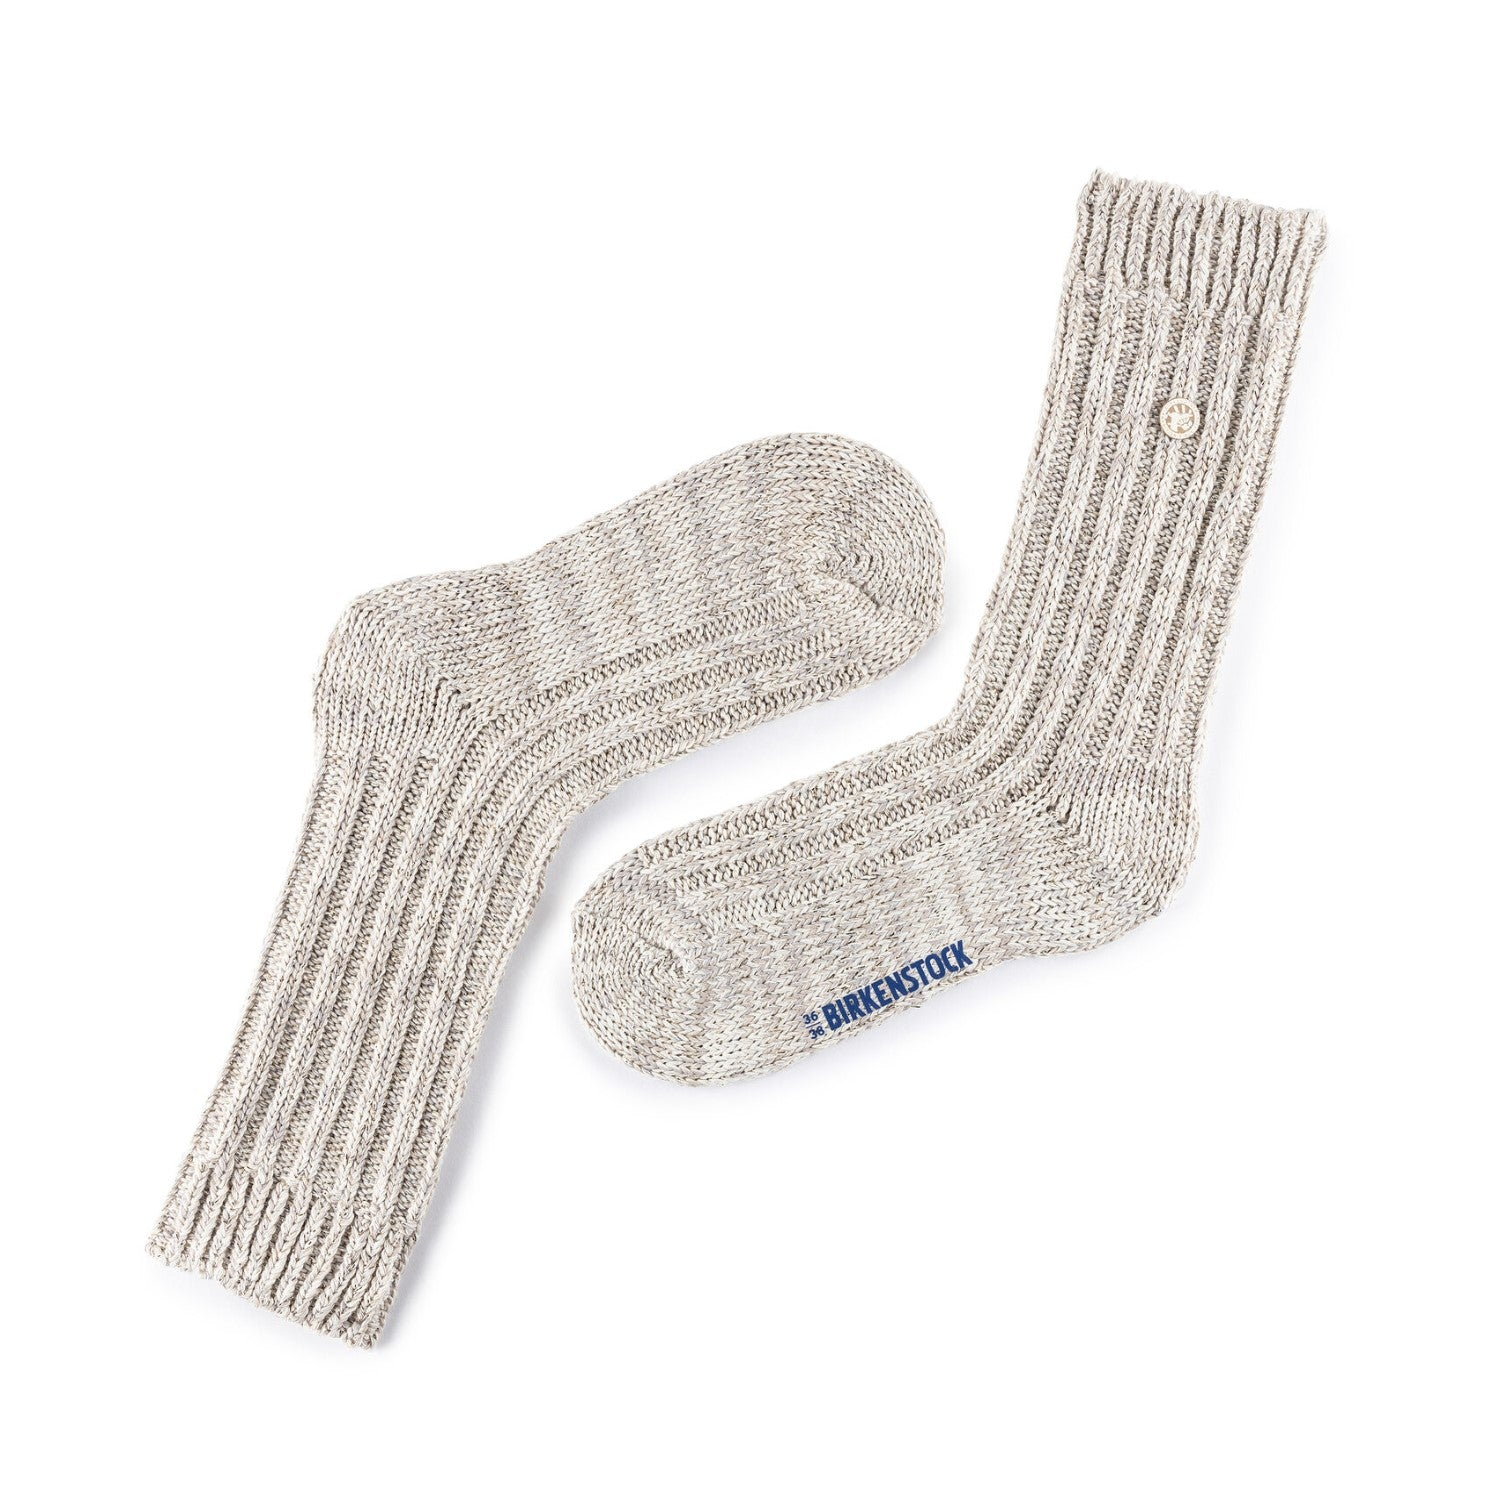 BIRKENSTOCK COTTON BLING SOCKS WOMEN EGGNOG